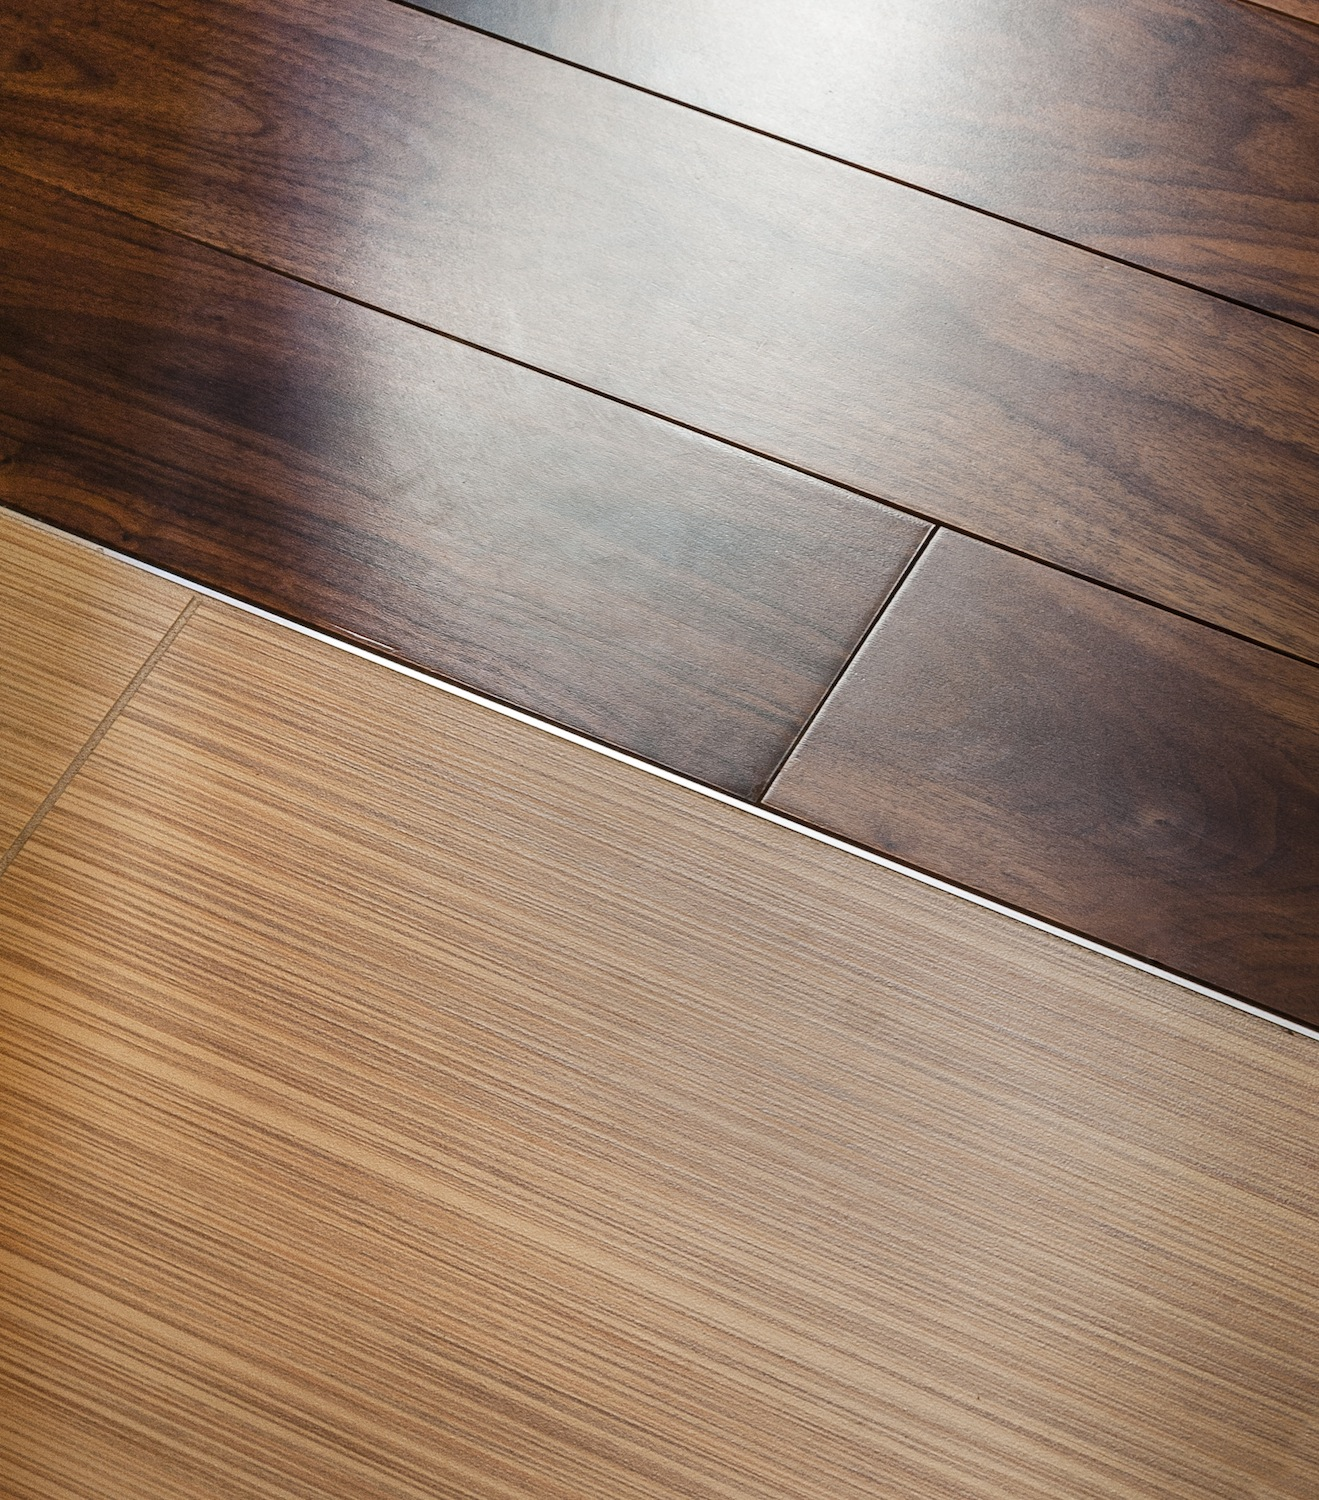 Tile to wood floor transition ideas homesfeed for Pisos ceramicos